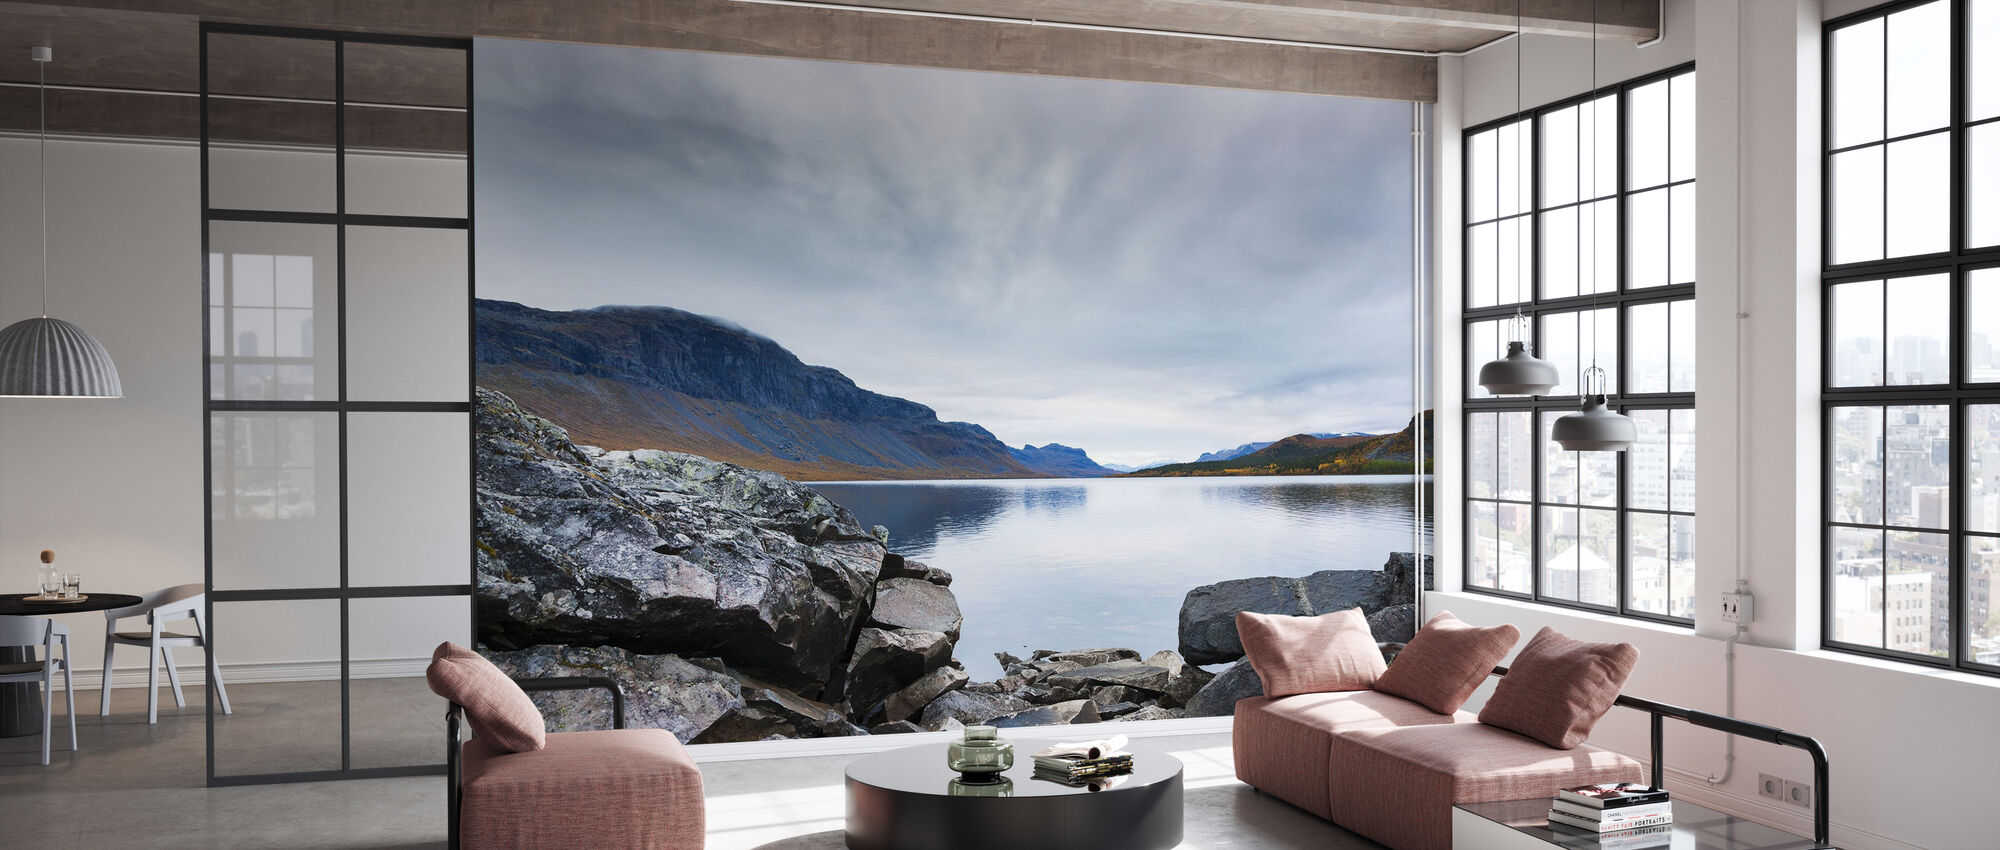 Powerful Lake Langas - Wallpaper - Office